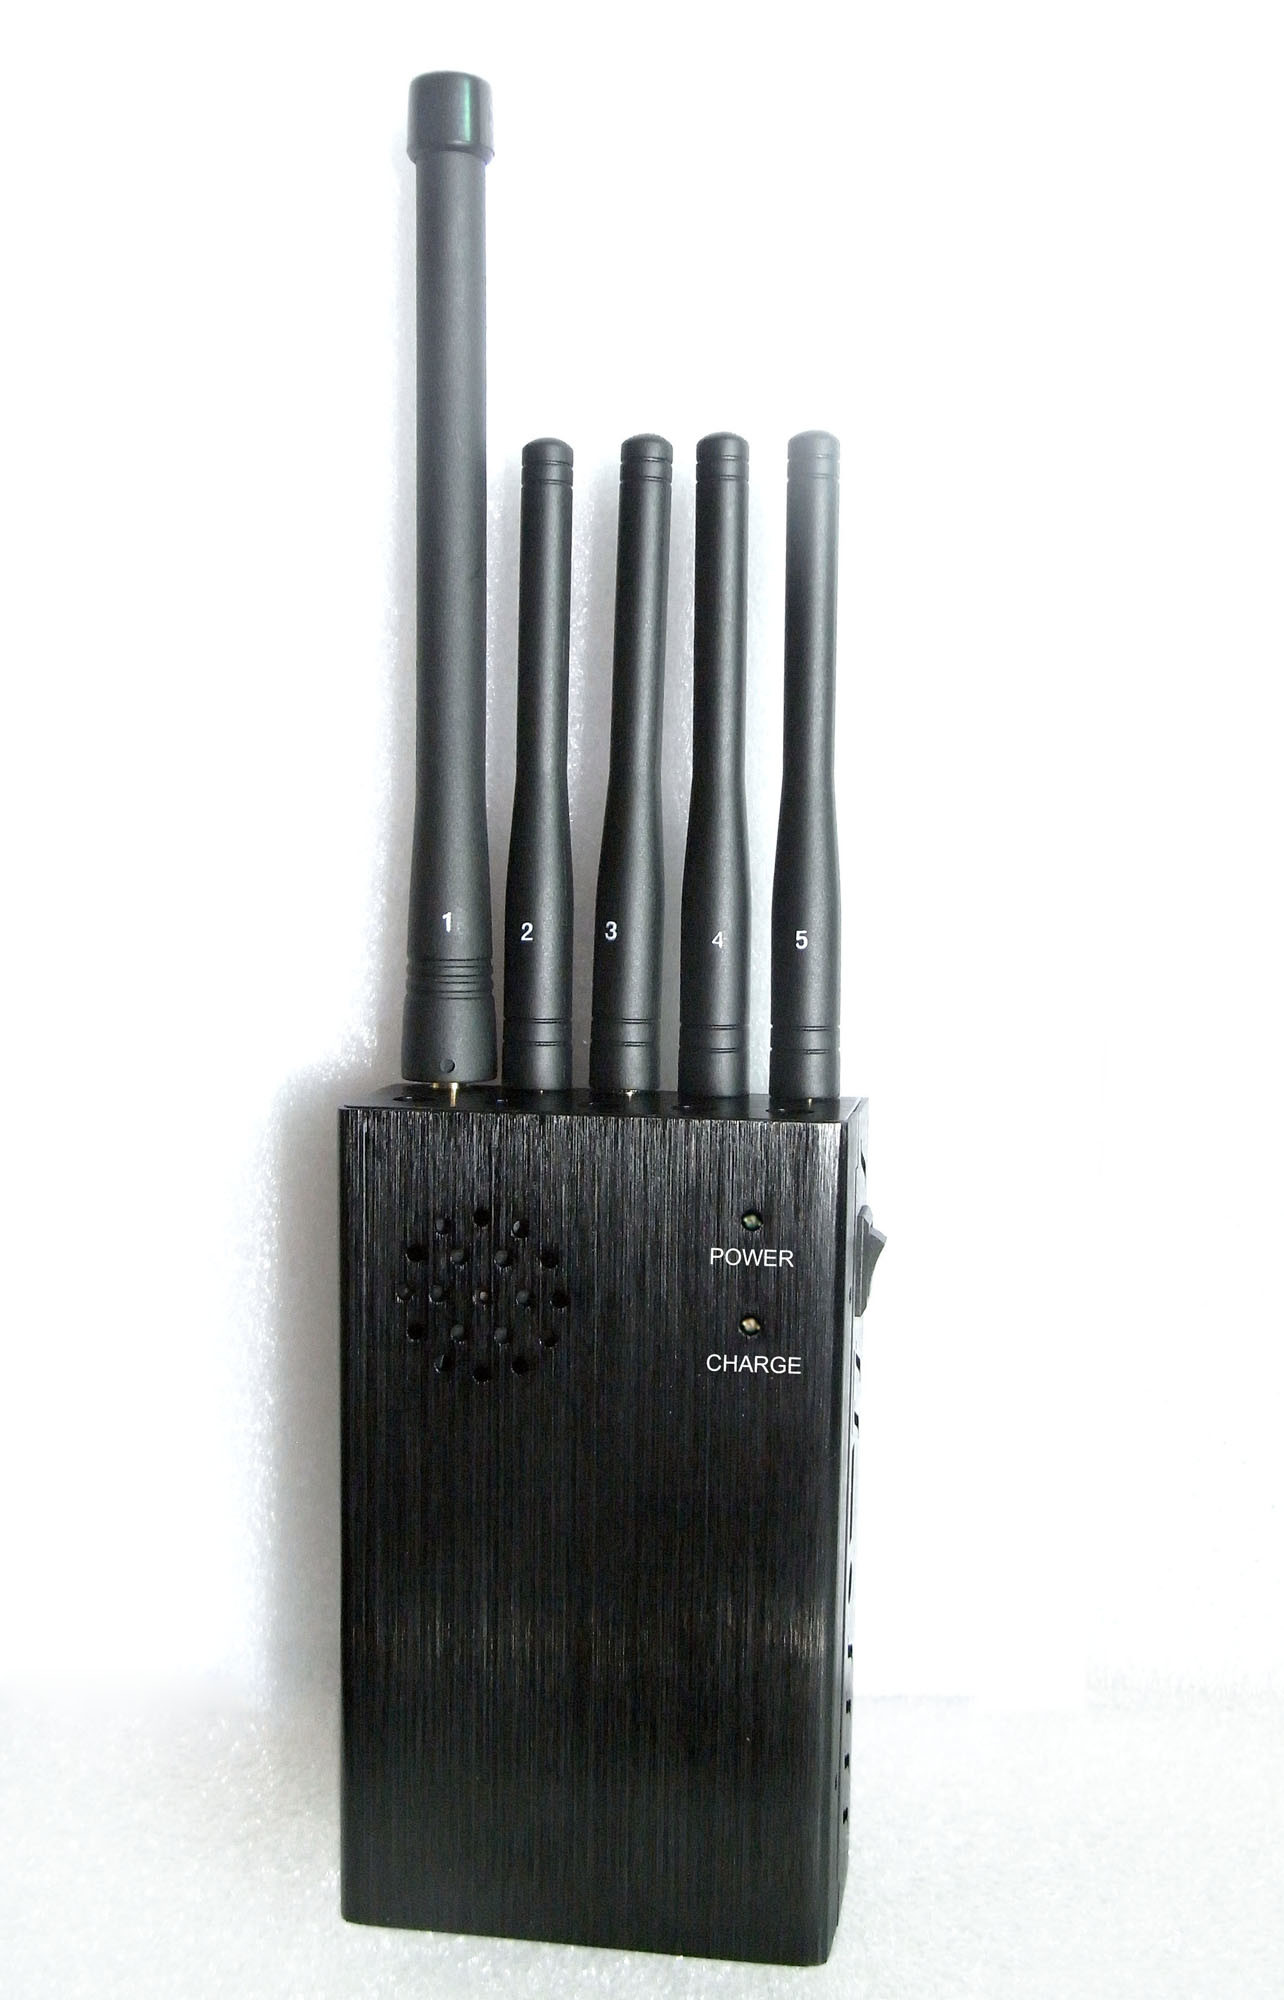 jloc gps jammer location services